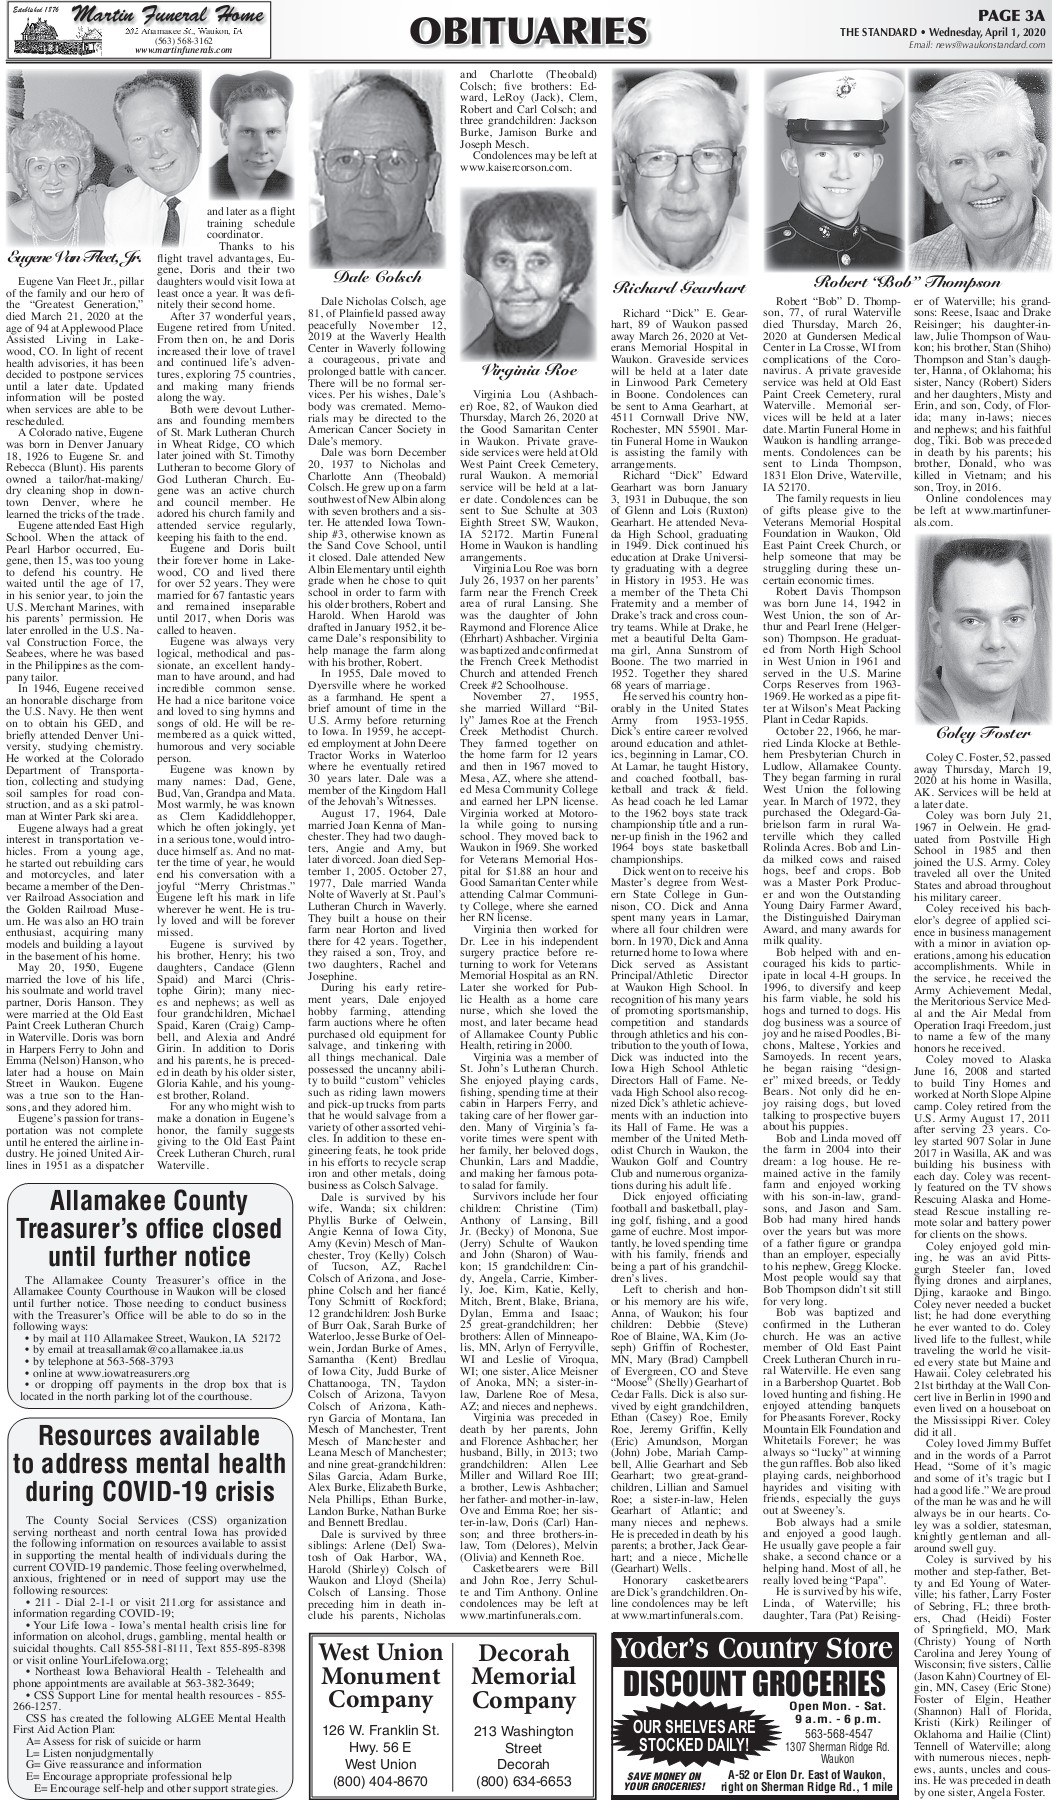 Martin Funeral Home Waukon Ia Obituaries : martin, funeral, waukon, obituaries, Standard, Newspaper, Waukon,, 4-1-20, Pages, Download, FlipHTML5